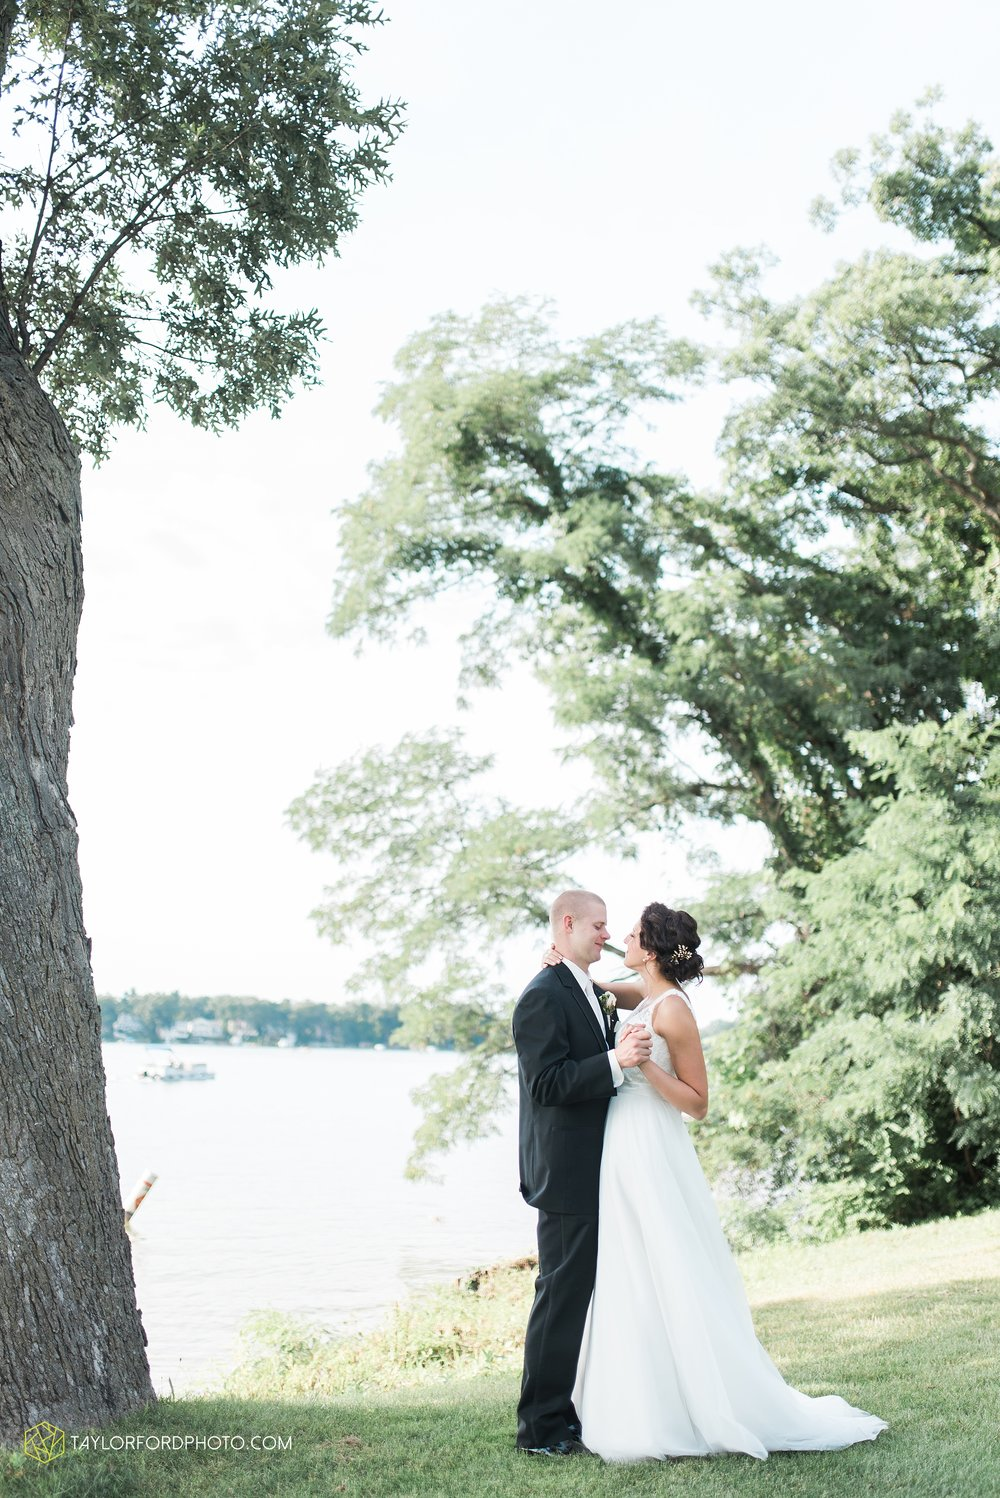 charlotte-battlecreek-michigan-wedding-photographer-Taylor-Ford-Photography-Ohio-Indiana_2946.jpg